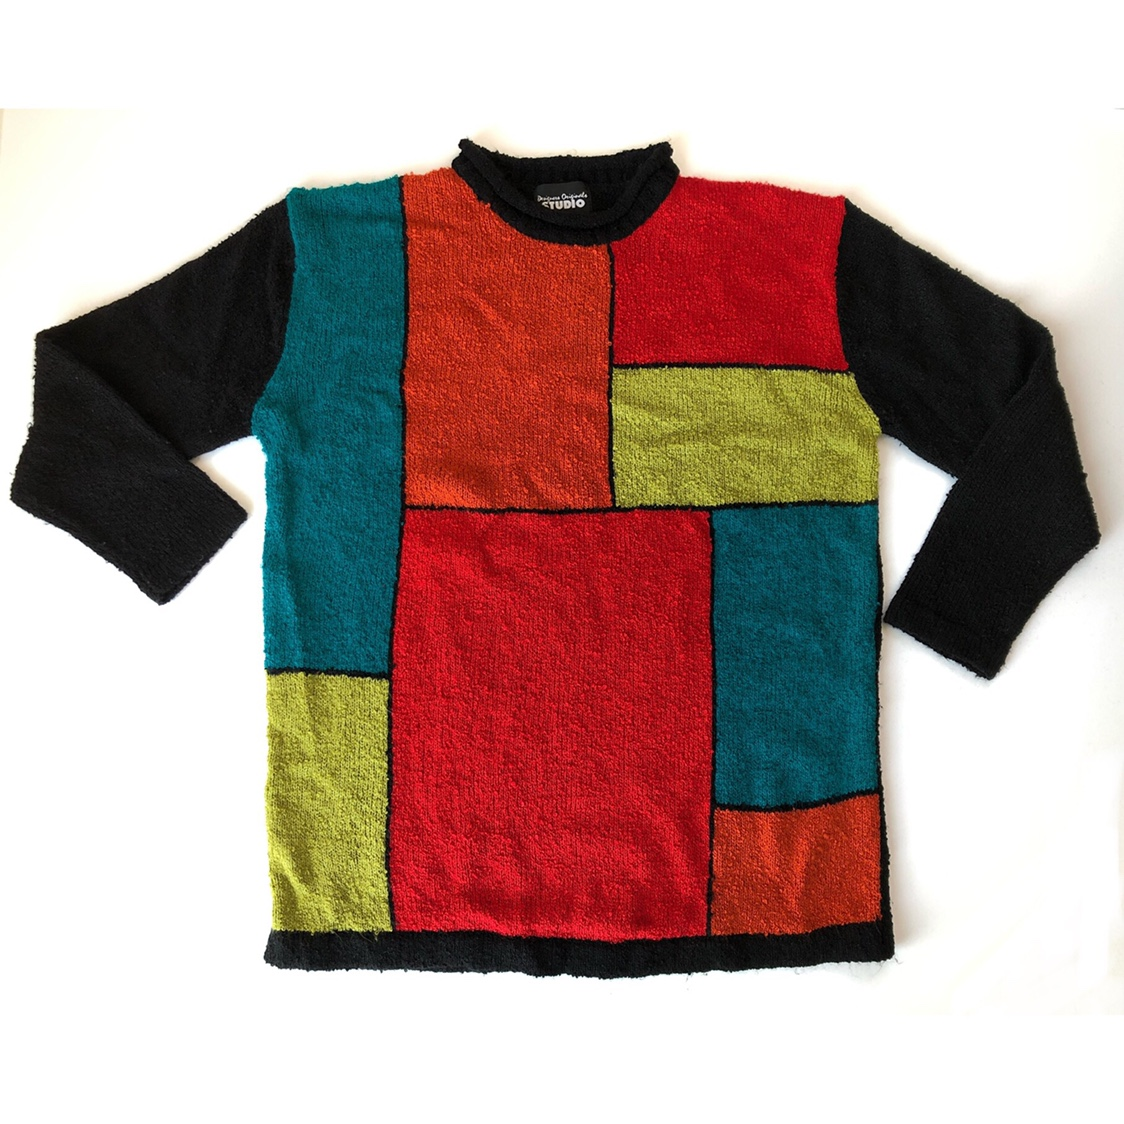 Product Image 1 - Colorblock Mondrian sweater. Tagged small.